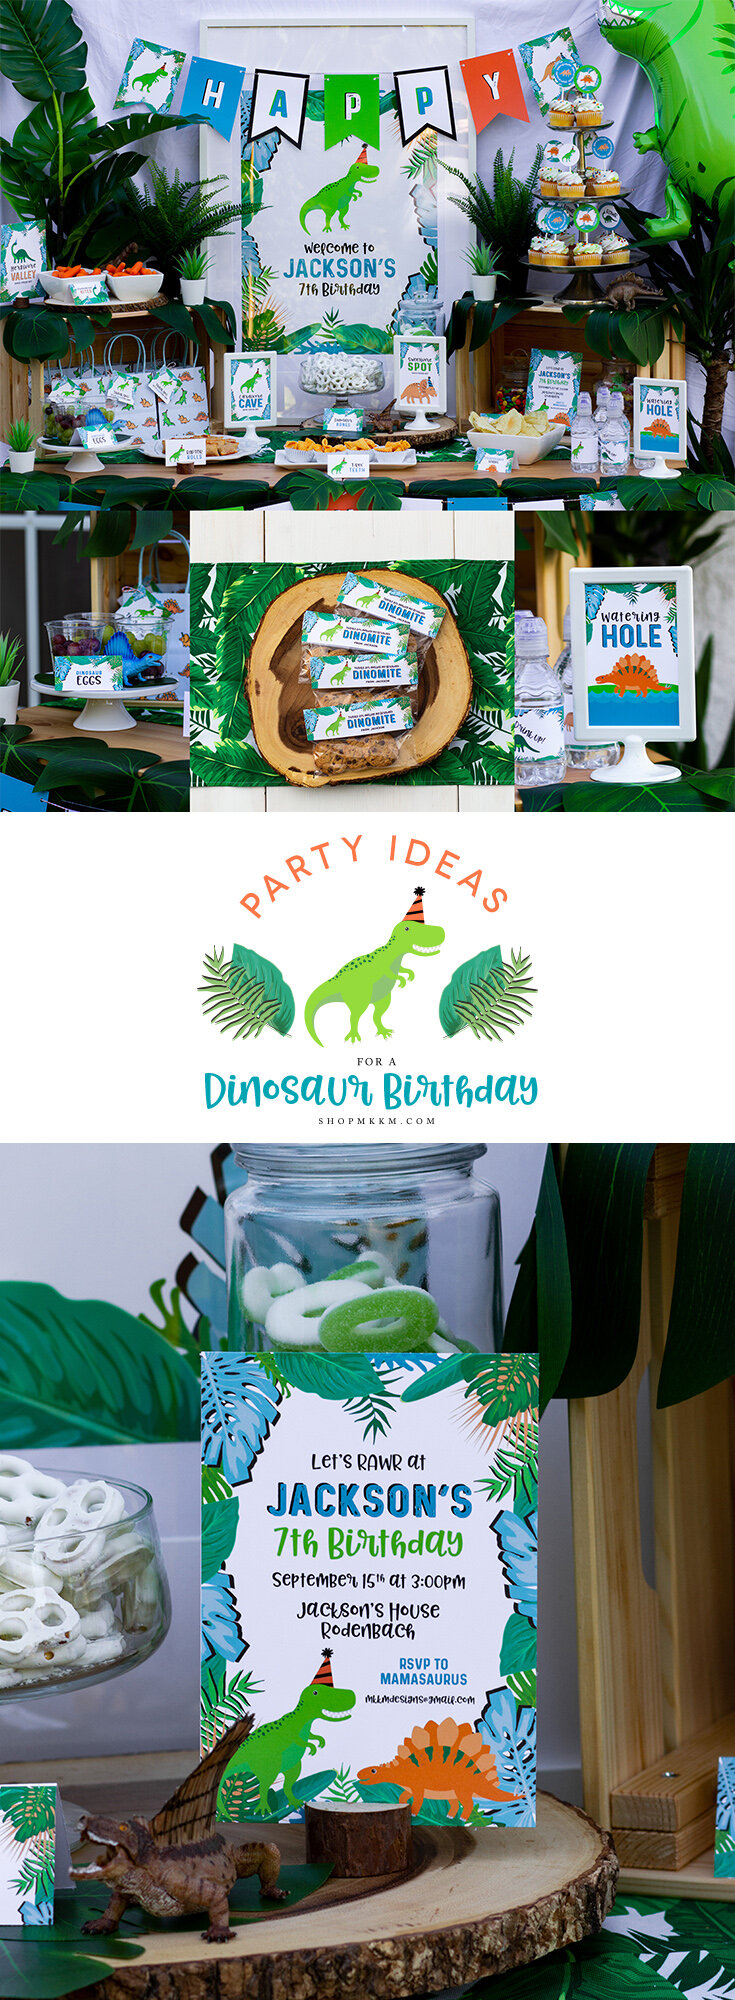 Freebies, decor ideas and dinosaur party planning over on shopmkkm.com